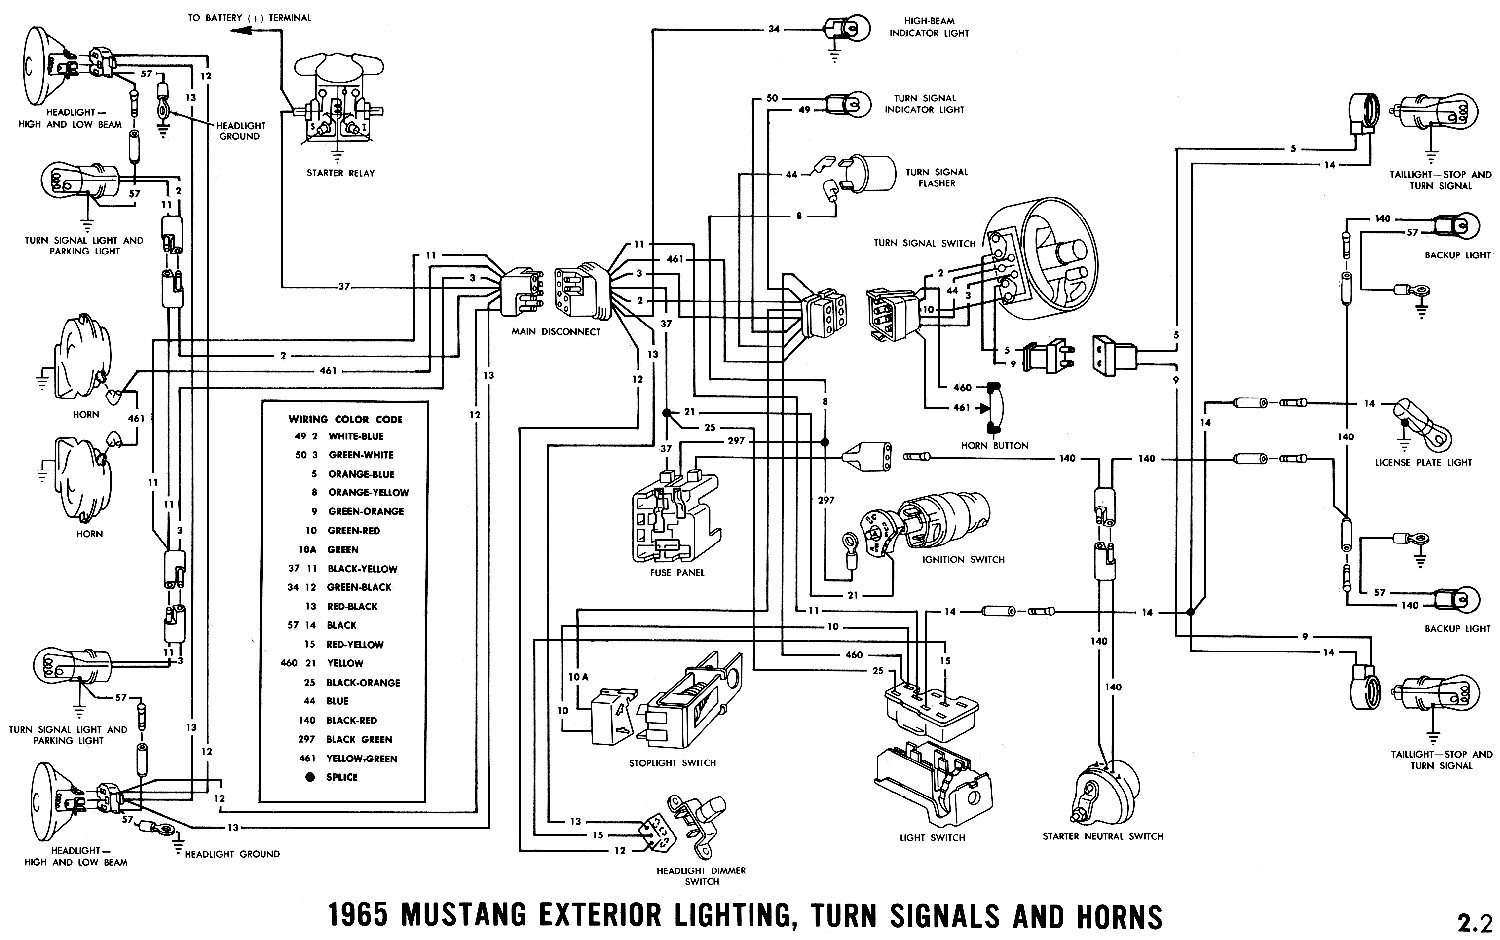 1964 1 2 Ford Mustang Wiring Diagram Data 1983 F 150 Ignition Manual E Books Truck